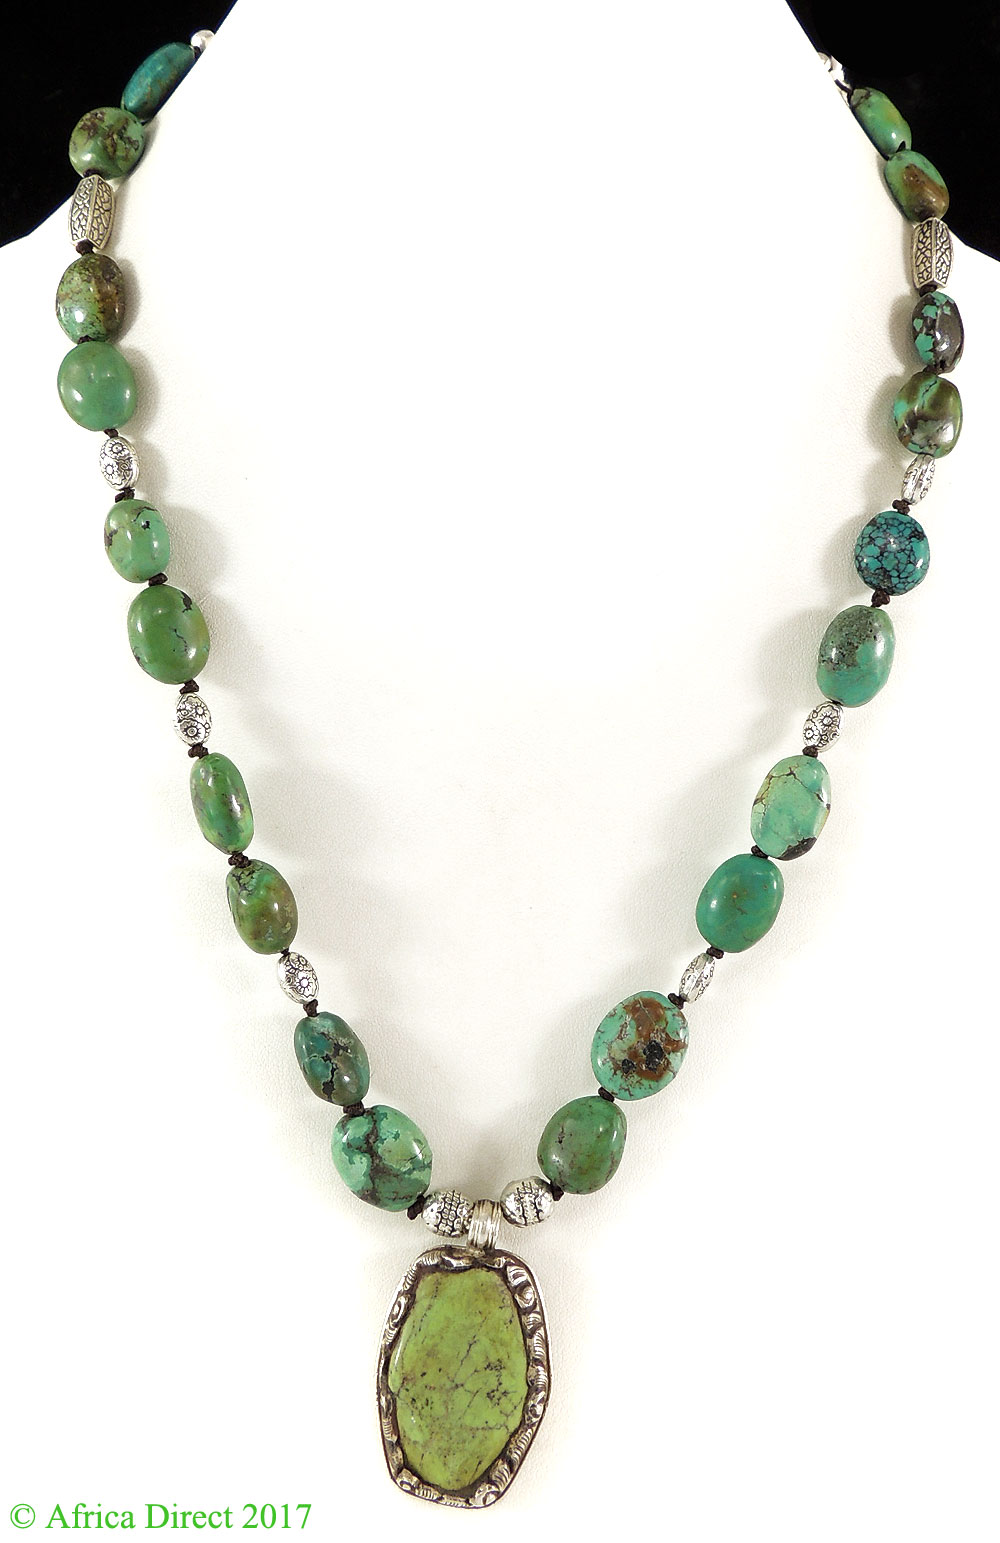 Tibetan Necklace Old Turquoise Silver Repoussee Pendant by